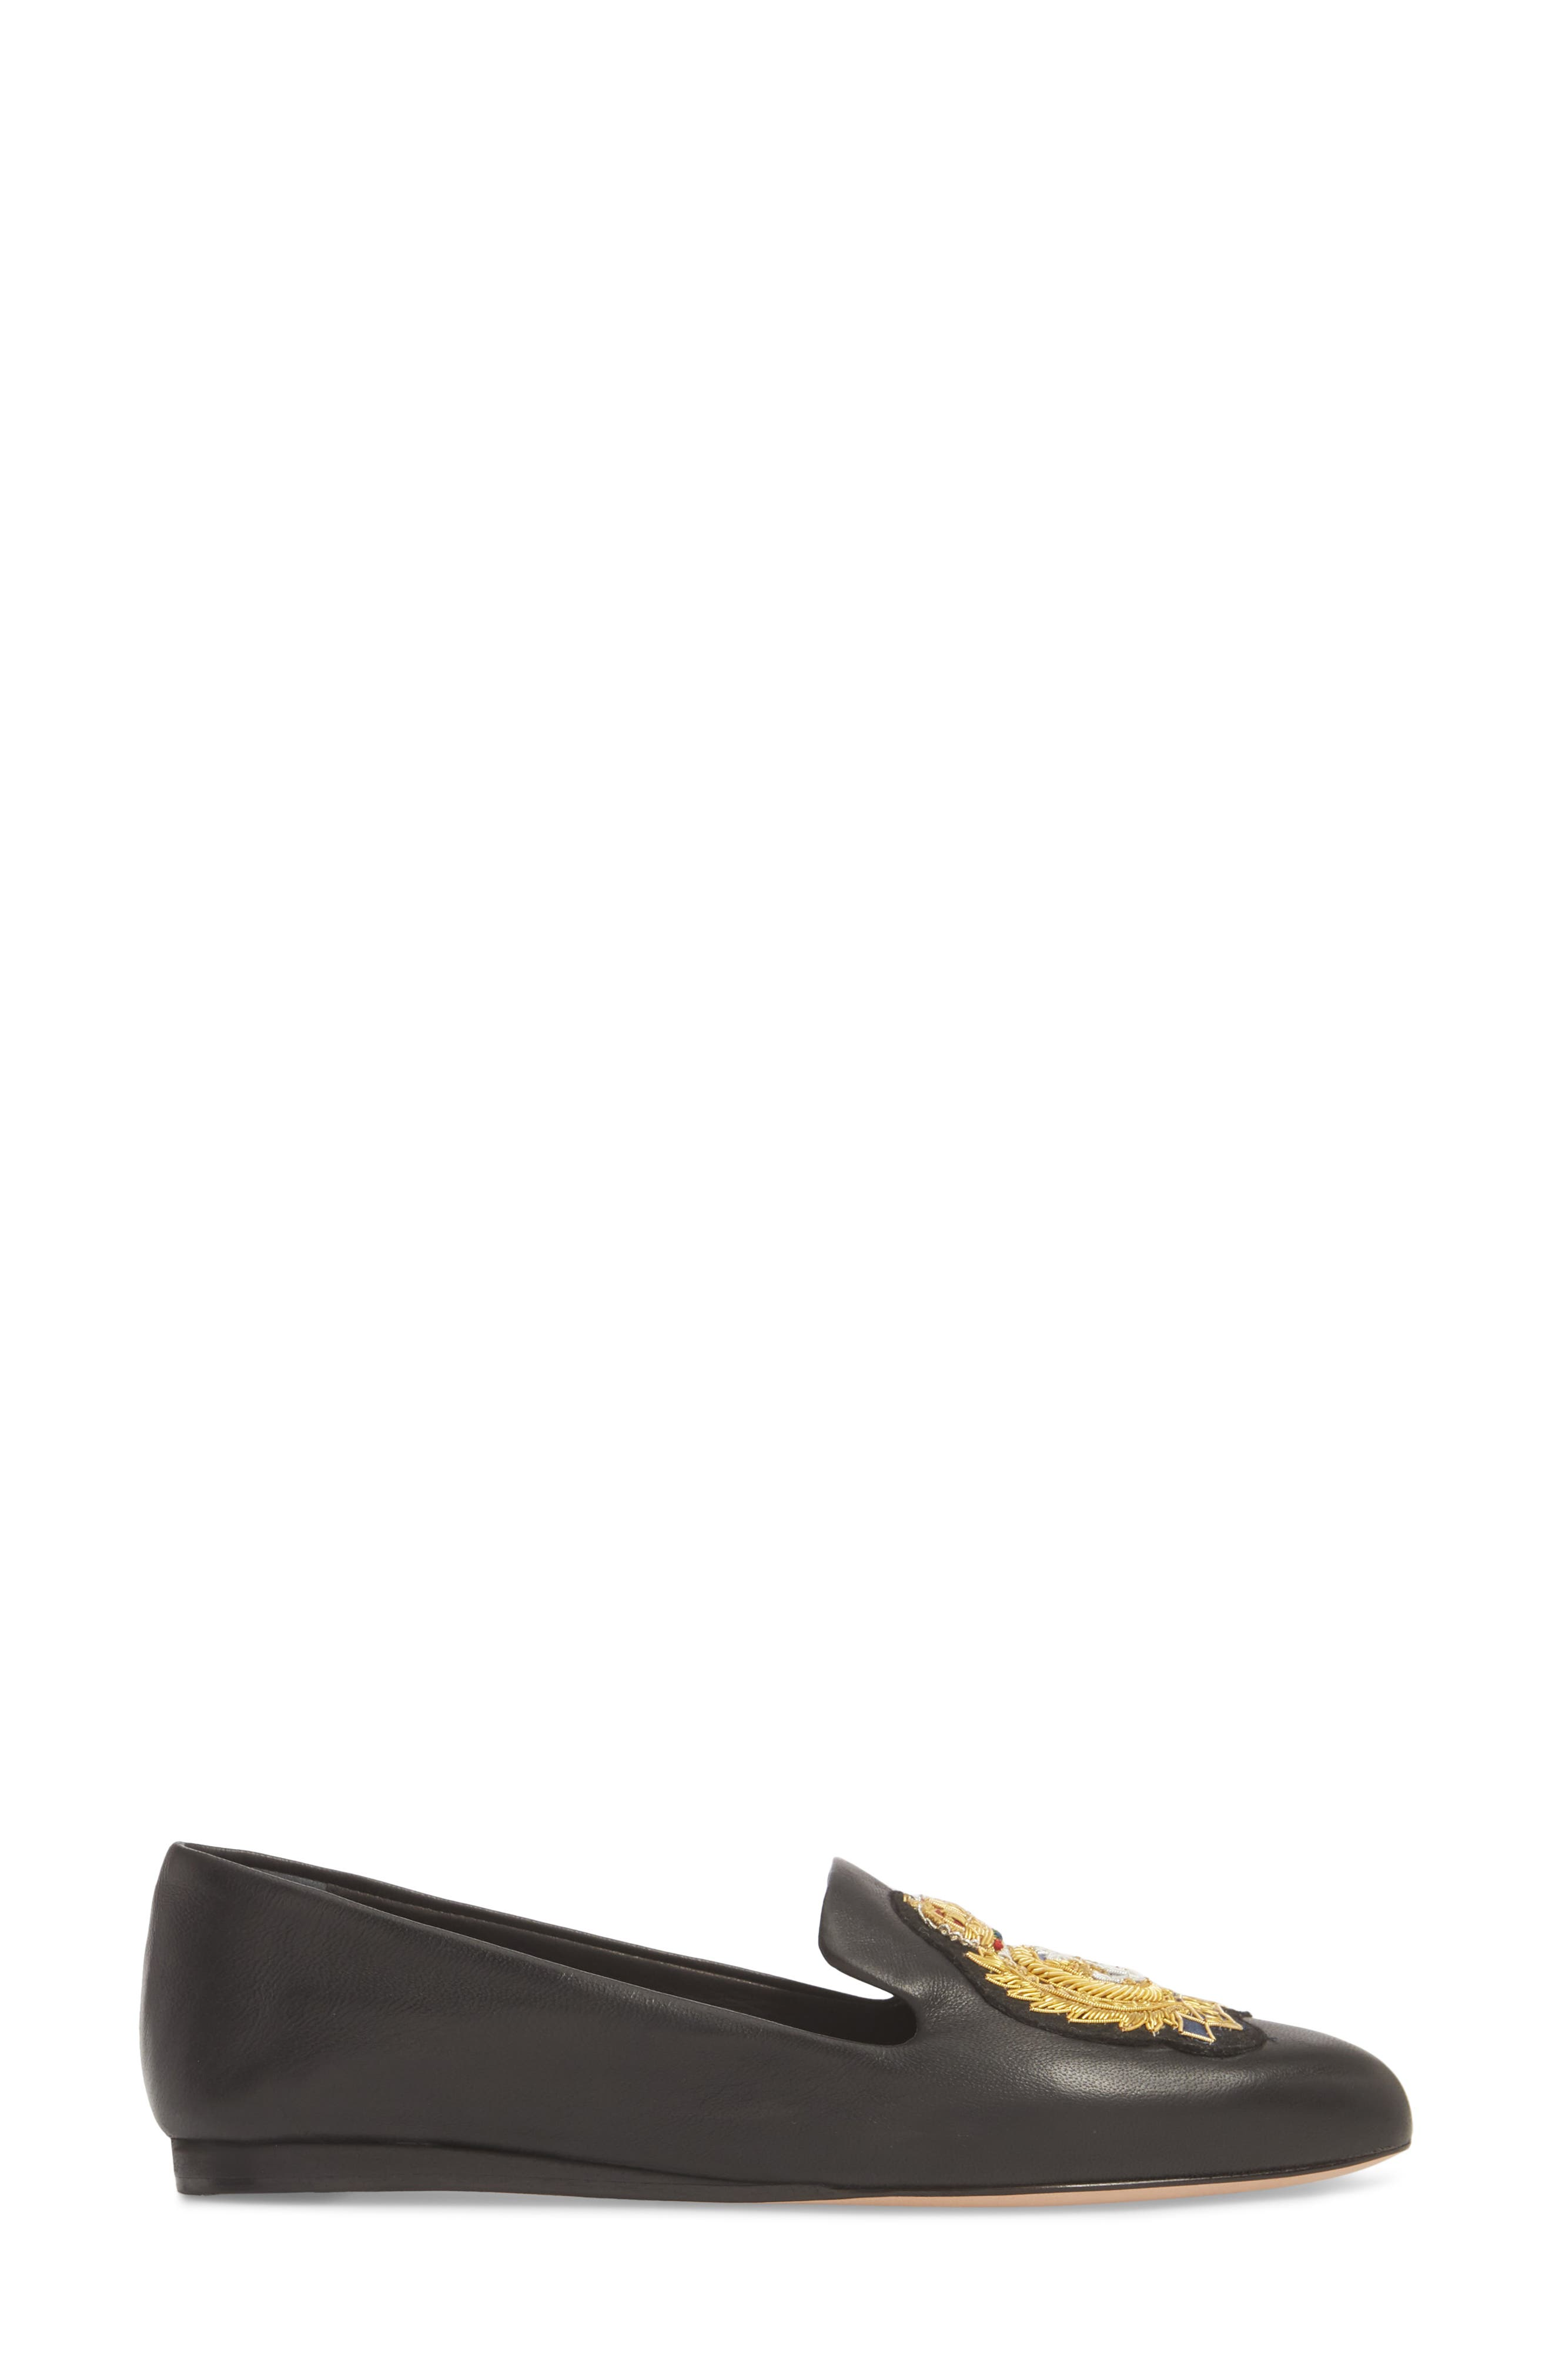 Griffin Pointy Toe Loafer,                             Alternate thumbnail 3, color,                             BLACK LEATHER